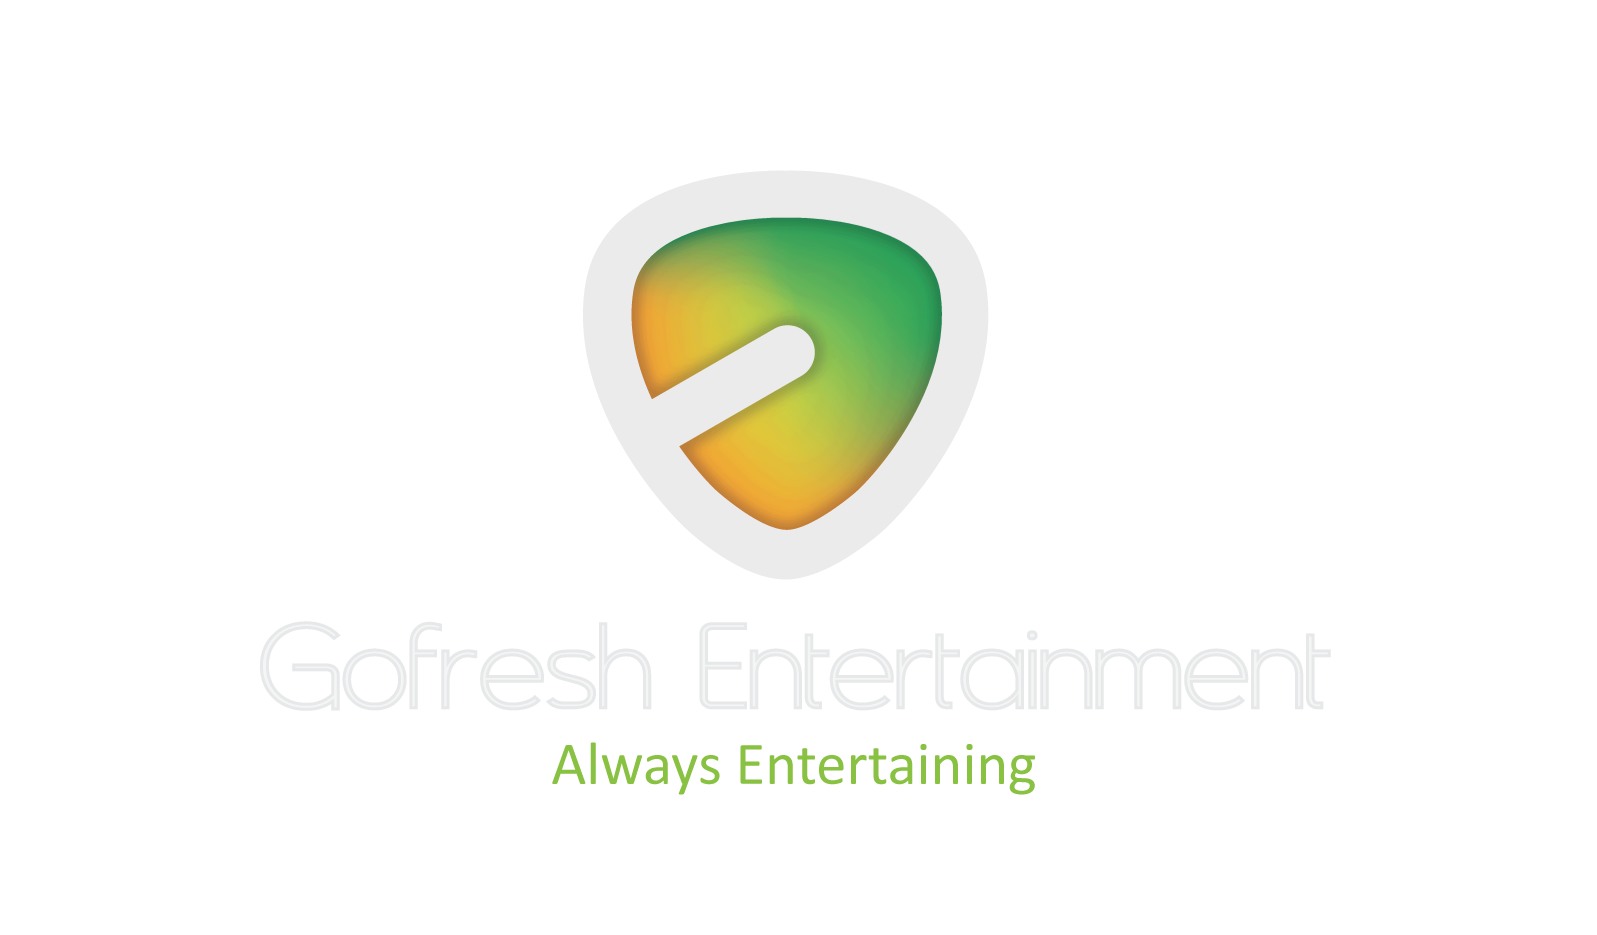 Gofresh Entertainment